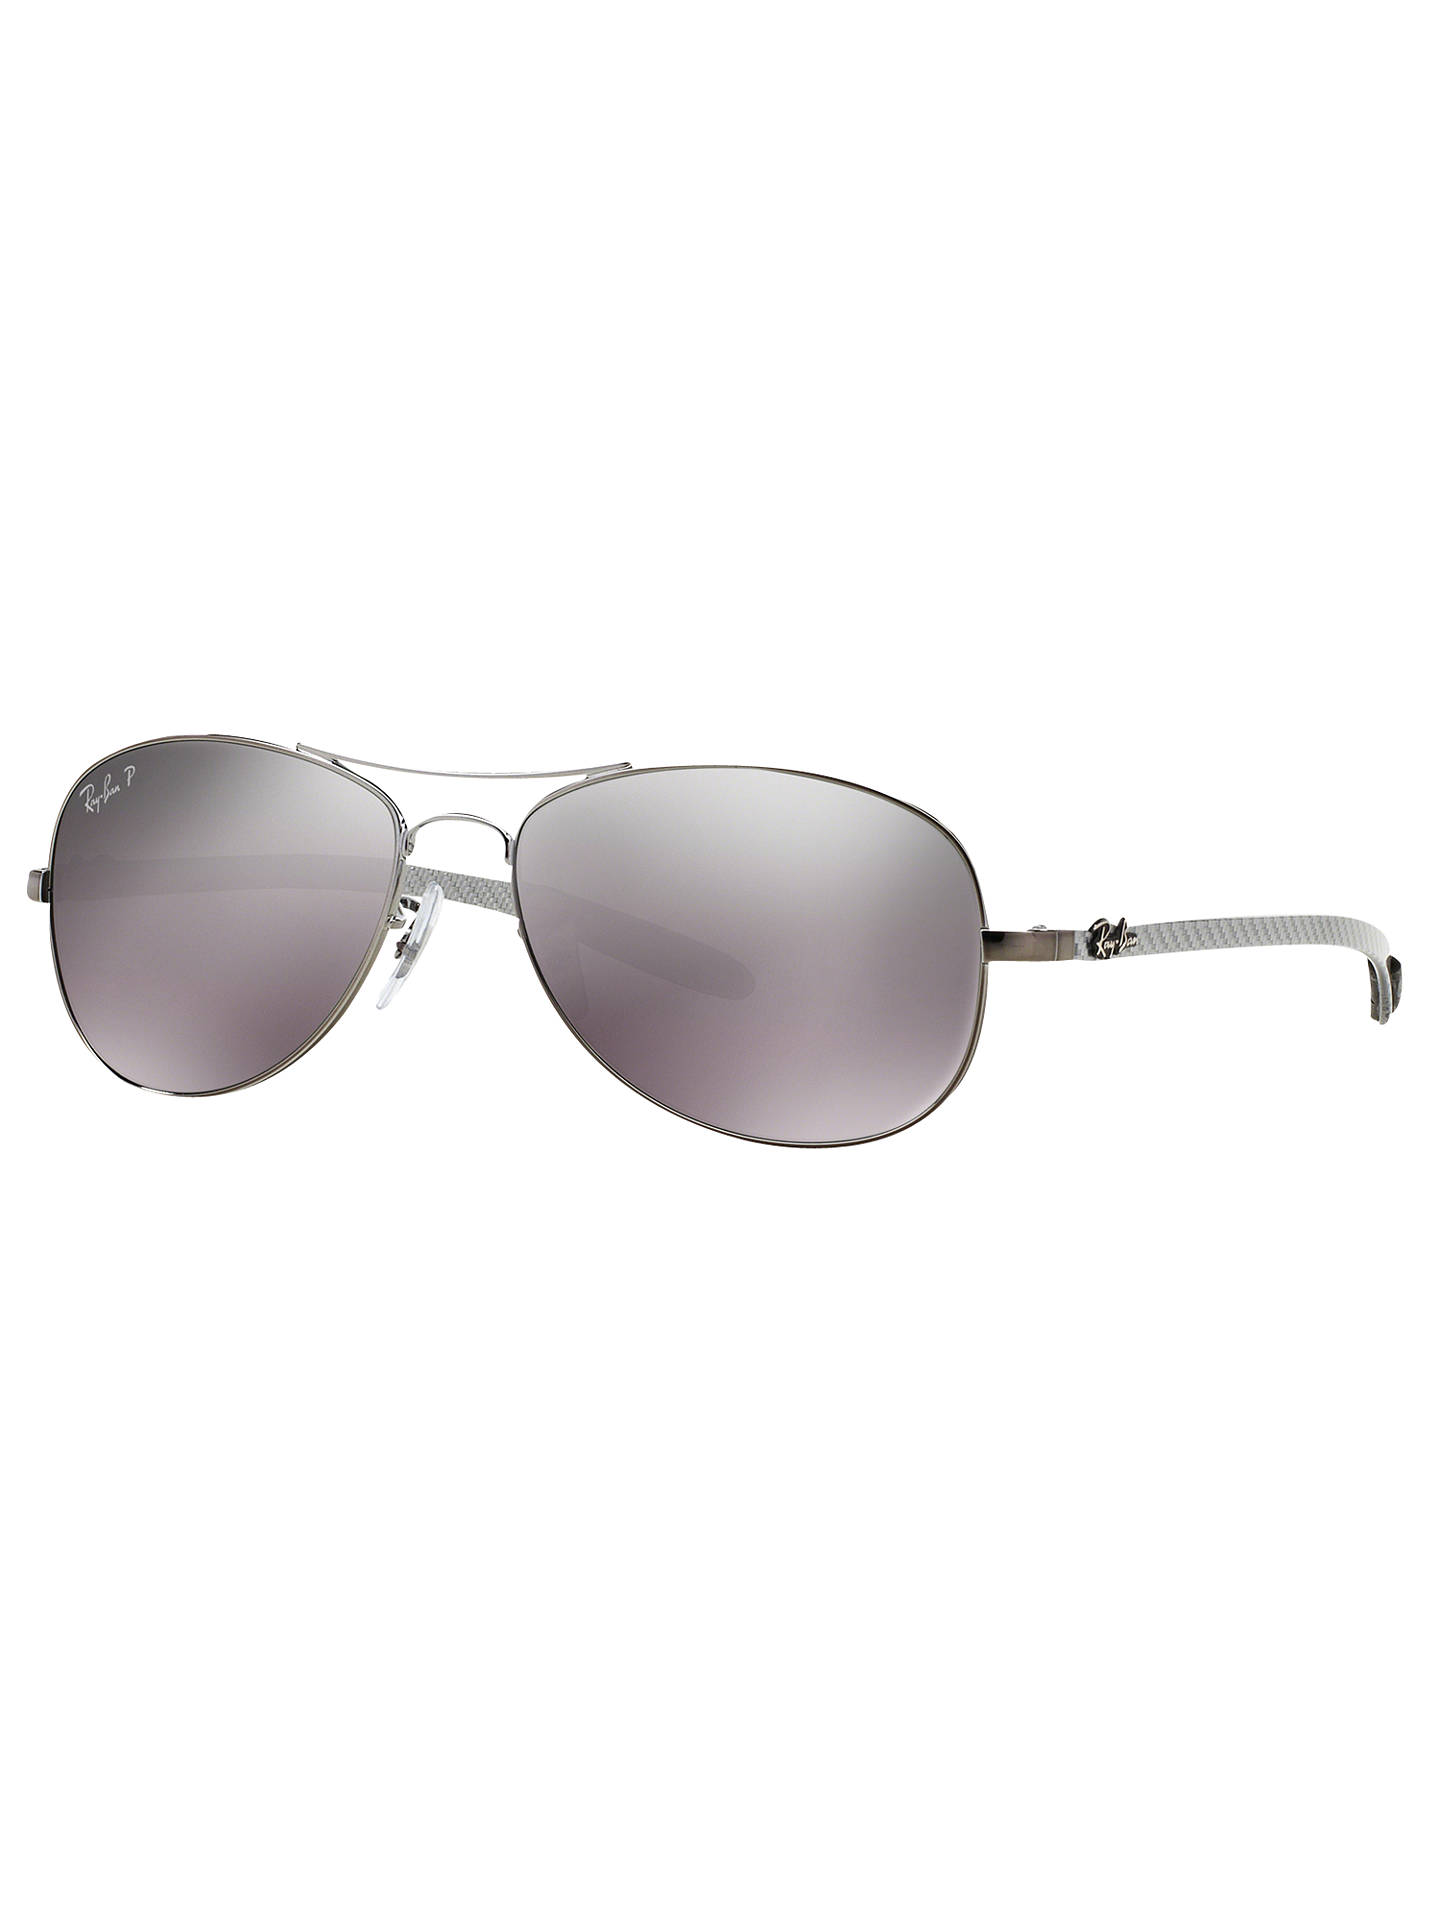 4c51127be Buy Ray-Ban RB8301 Polarised Aviator Sunglasses, Gunmetal/Mirror Grey  Online at johnlewis ...